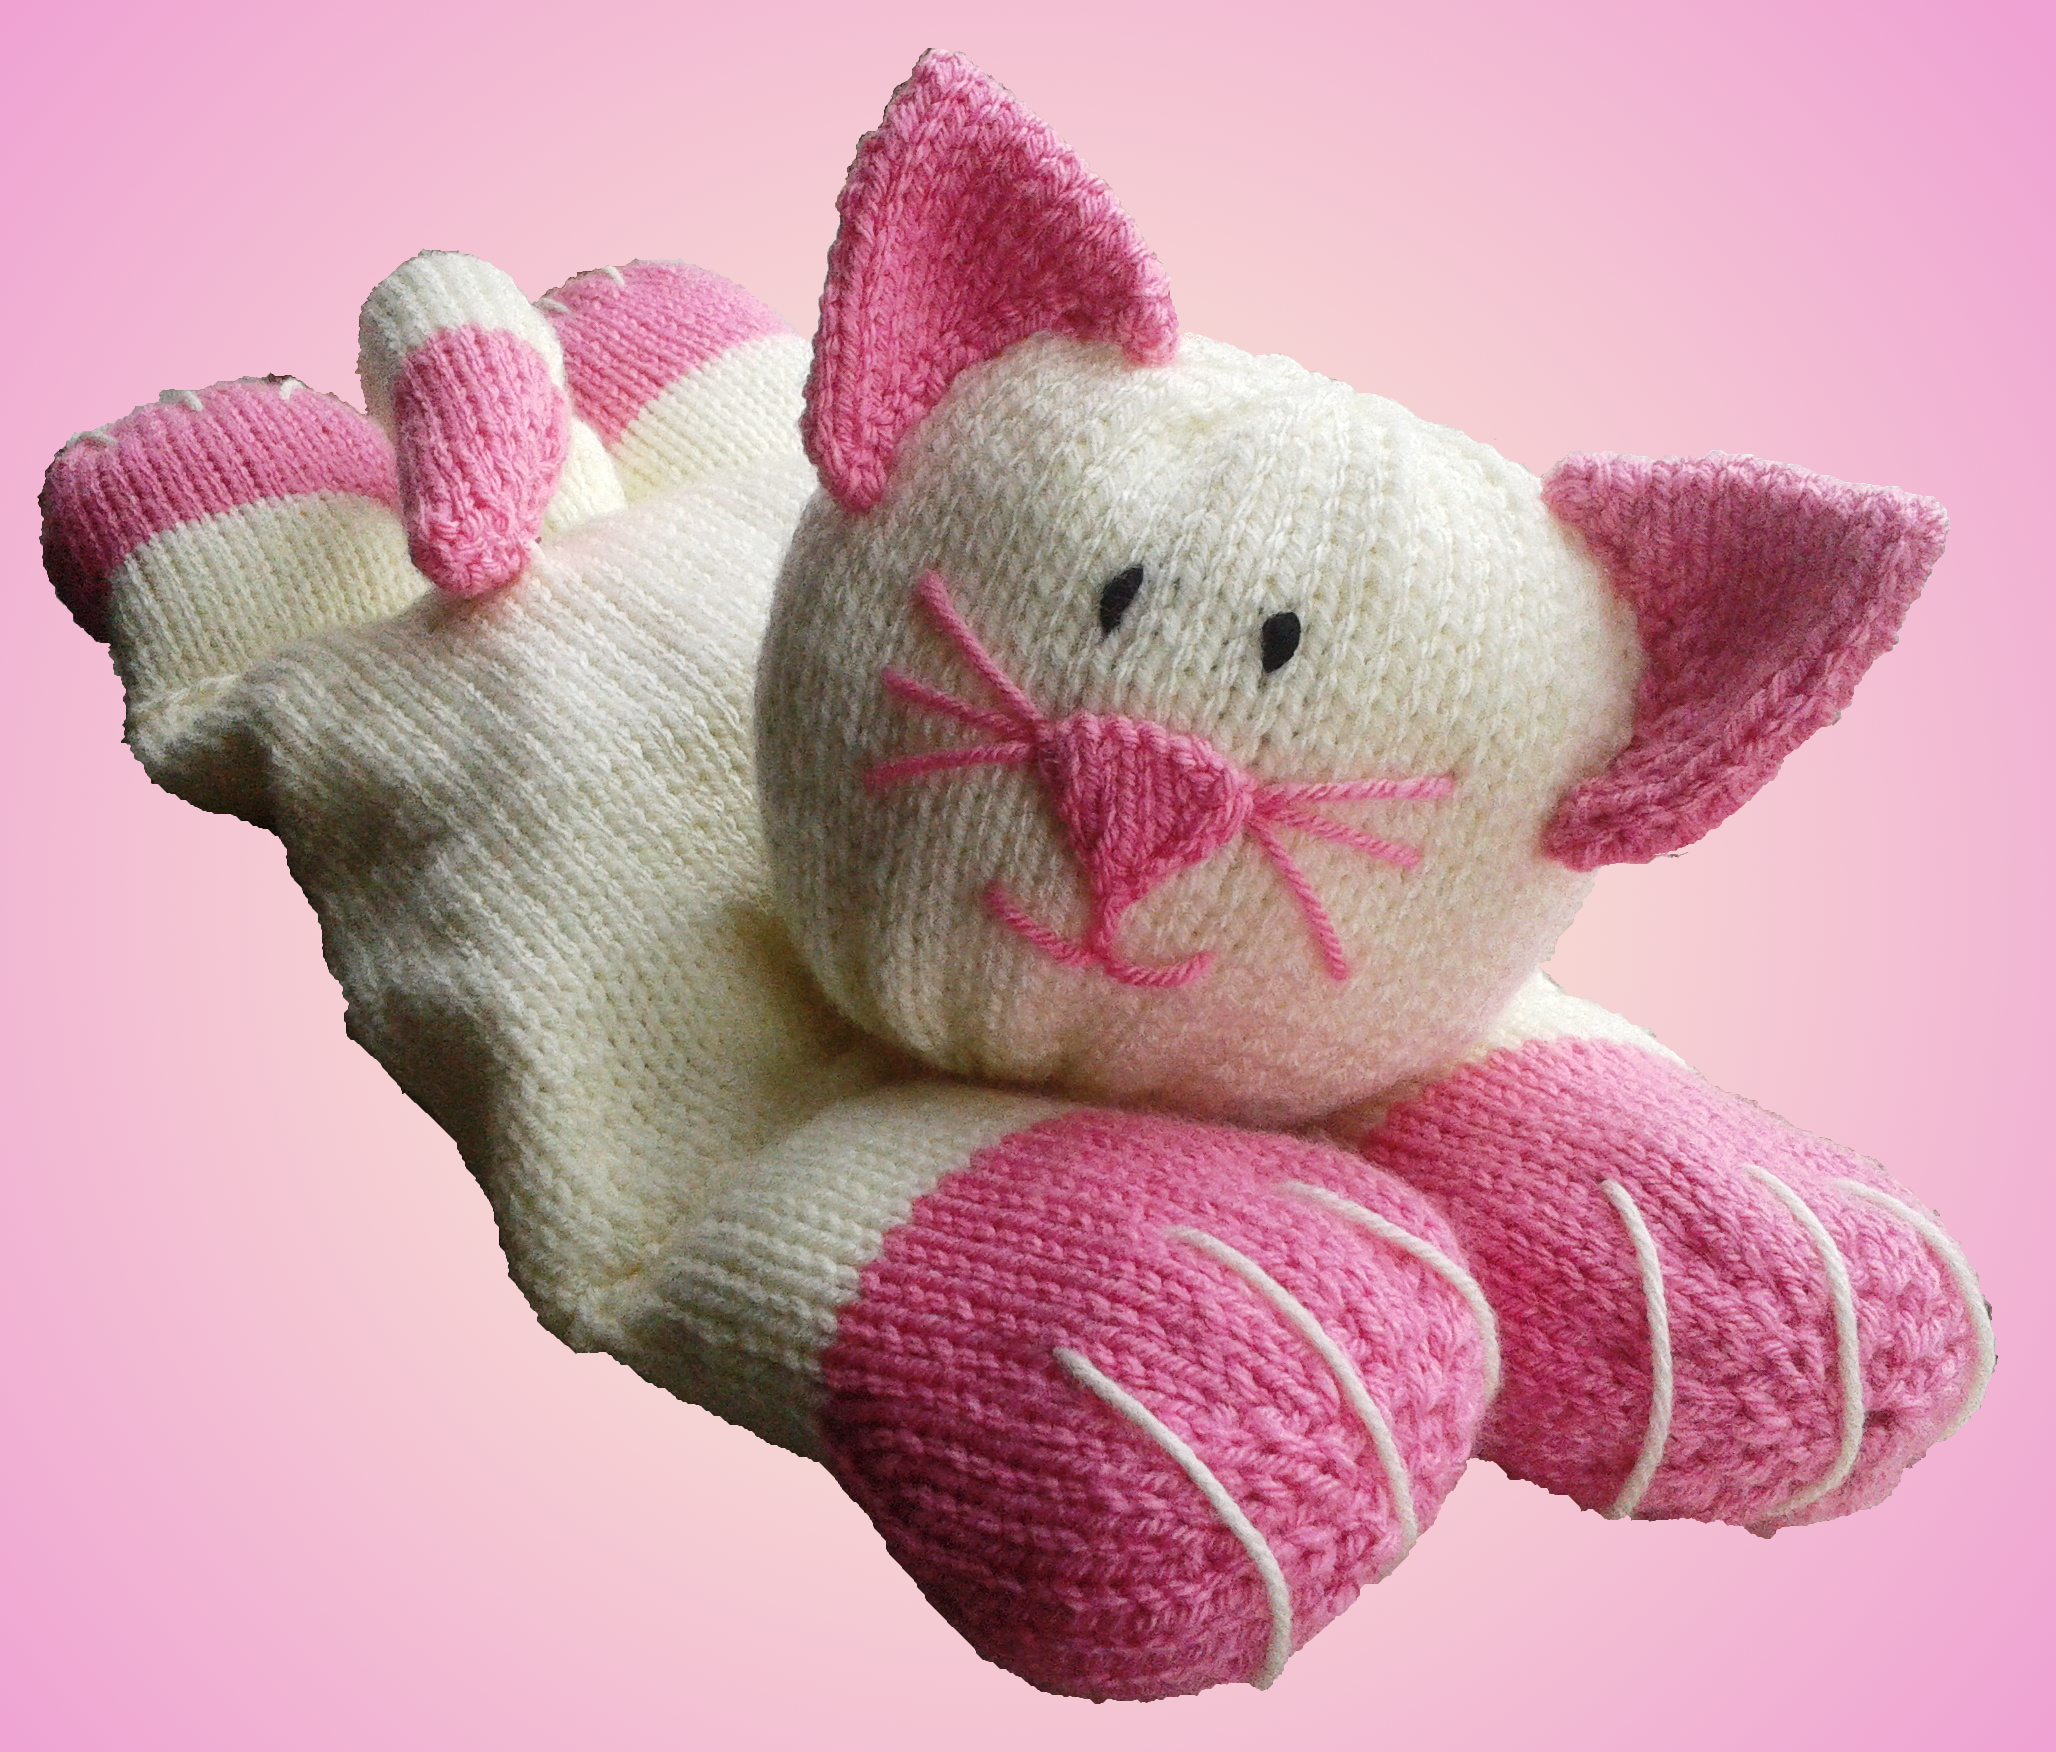 Cat Design Knitting Pattern : The Cat s Pyjamas   Pyjama Case Knitting Pattern   Knitting by Post